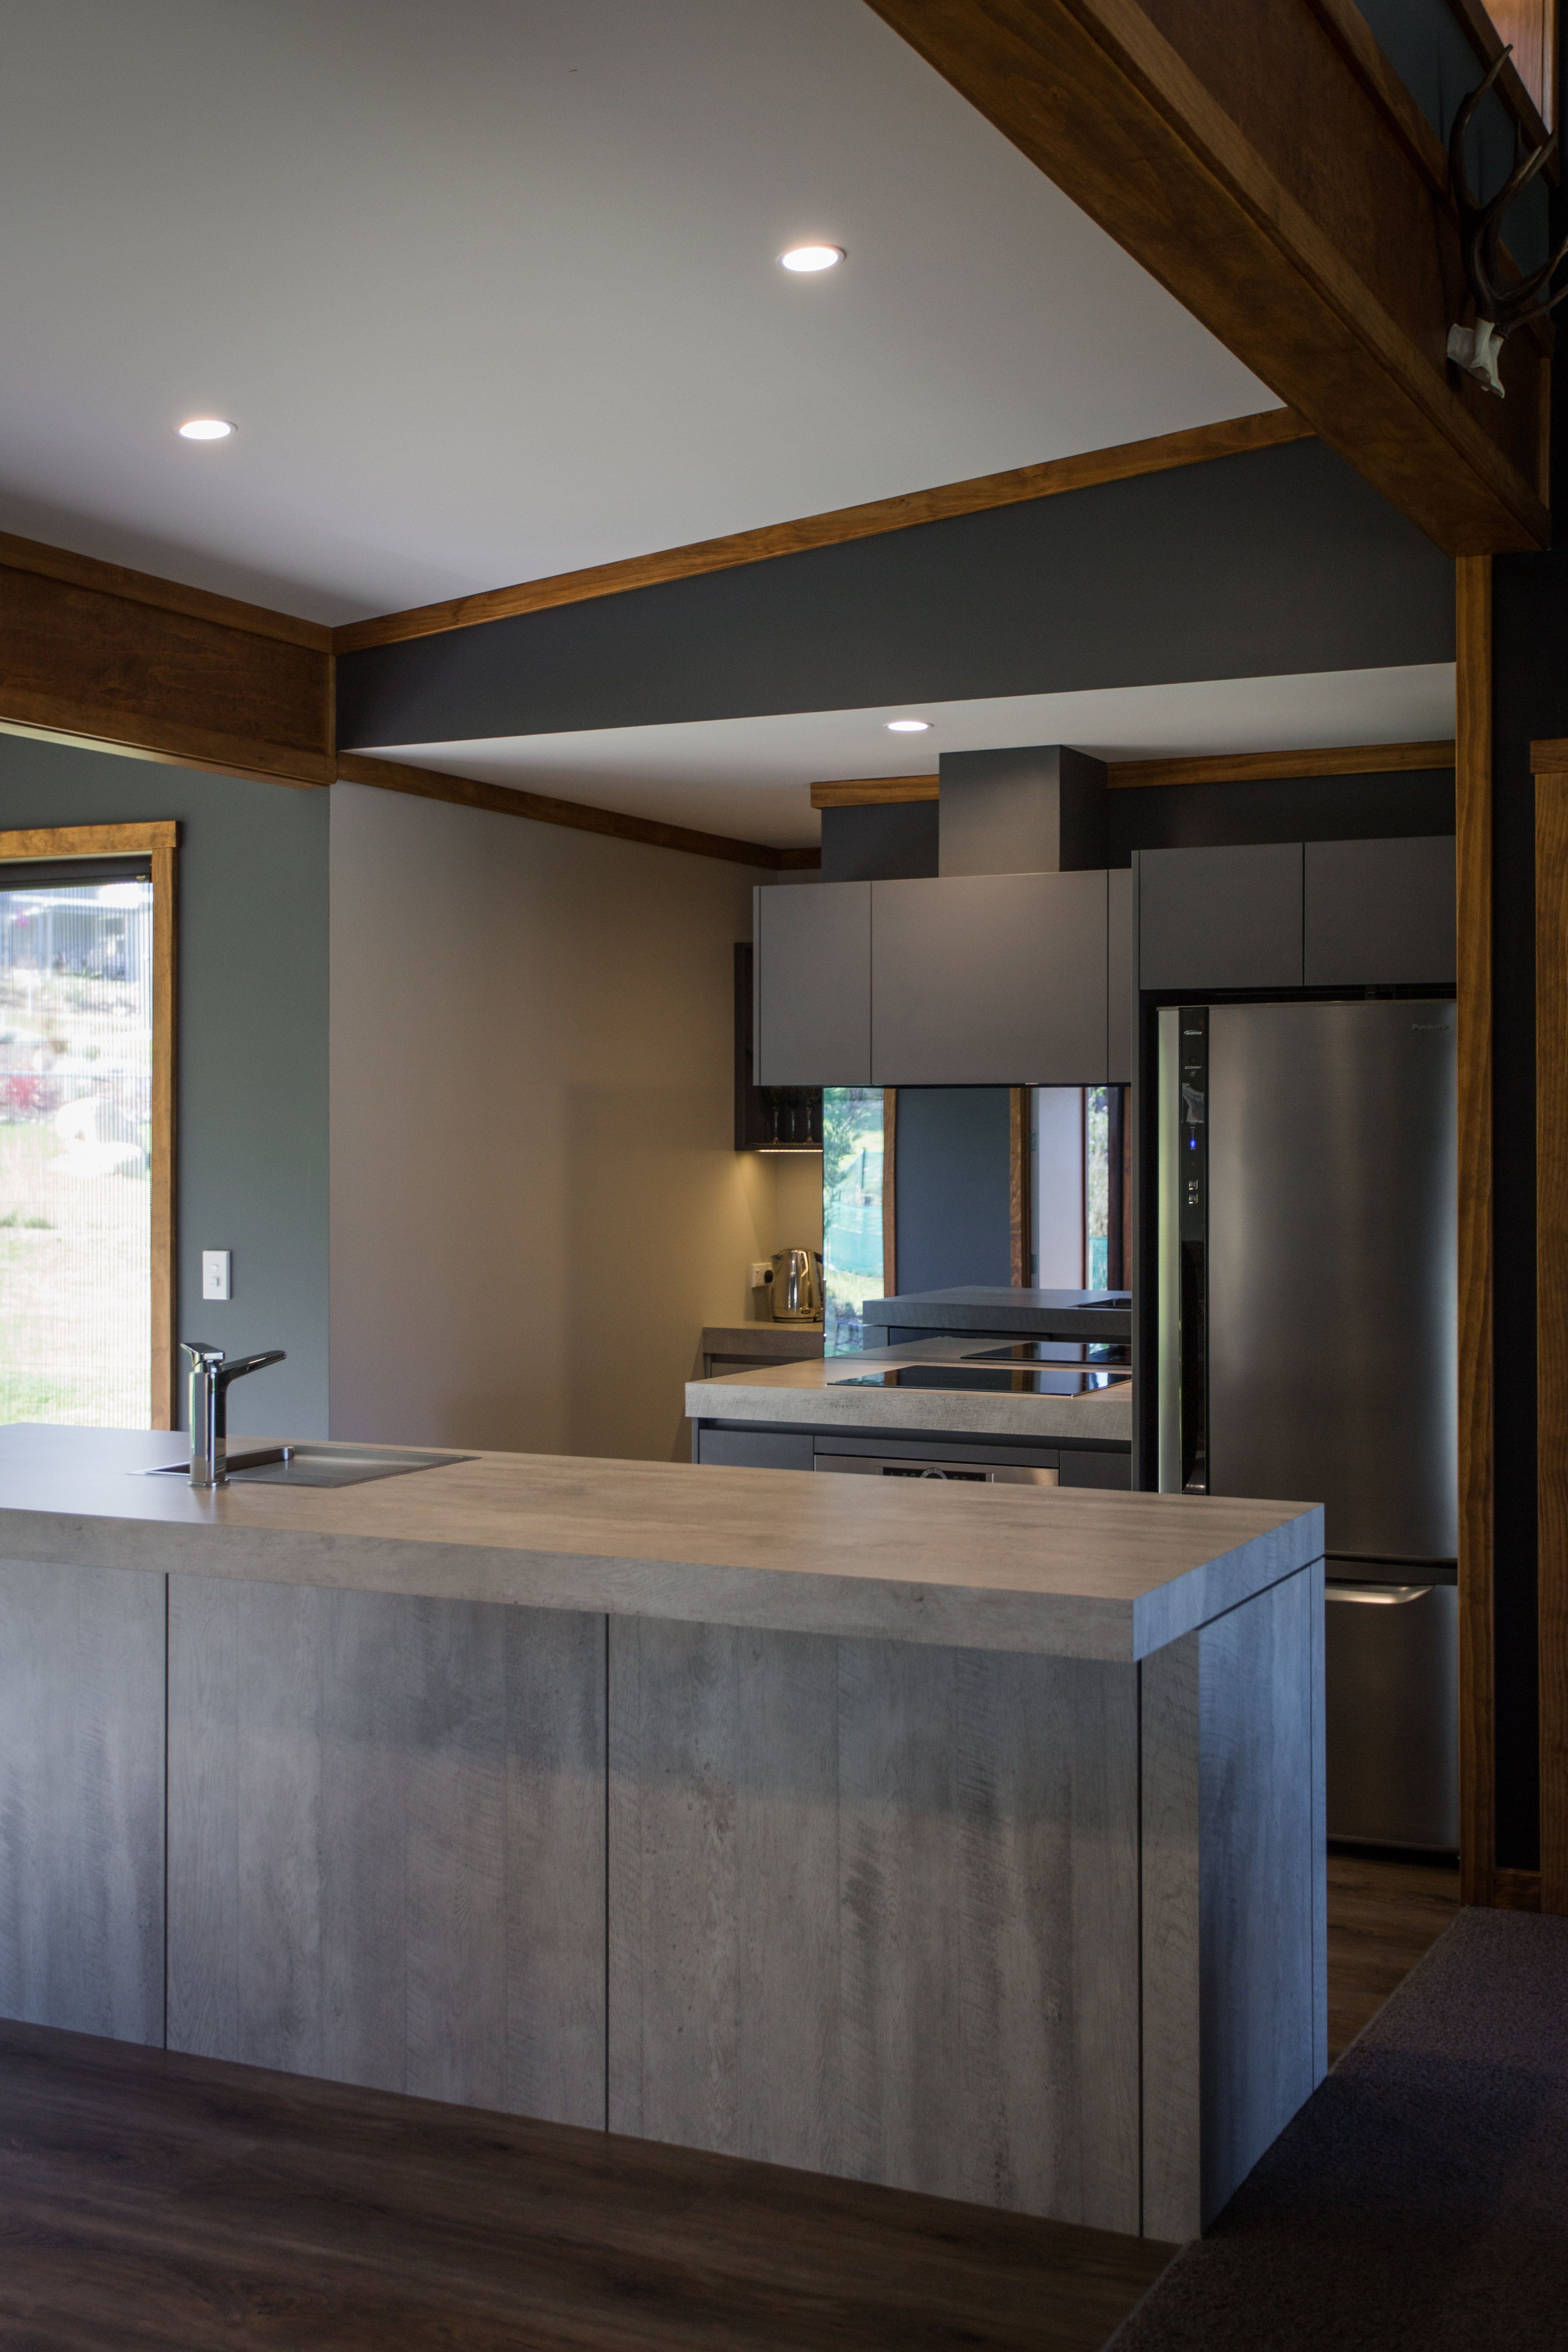 featuring Laminex laminate Concrete Formwood Kitchen